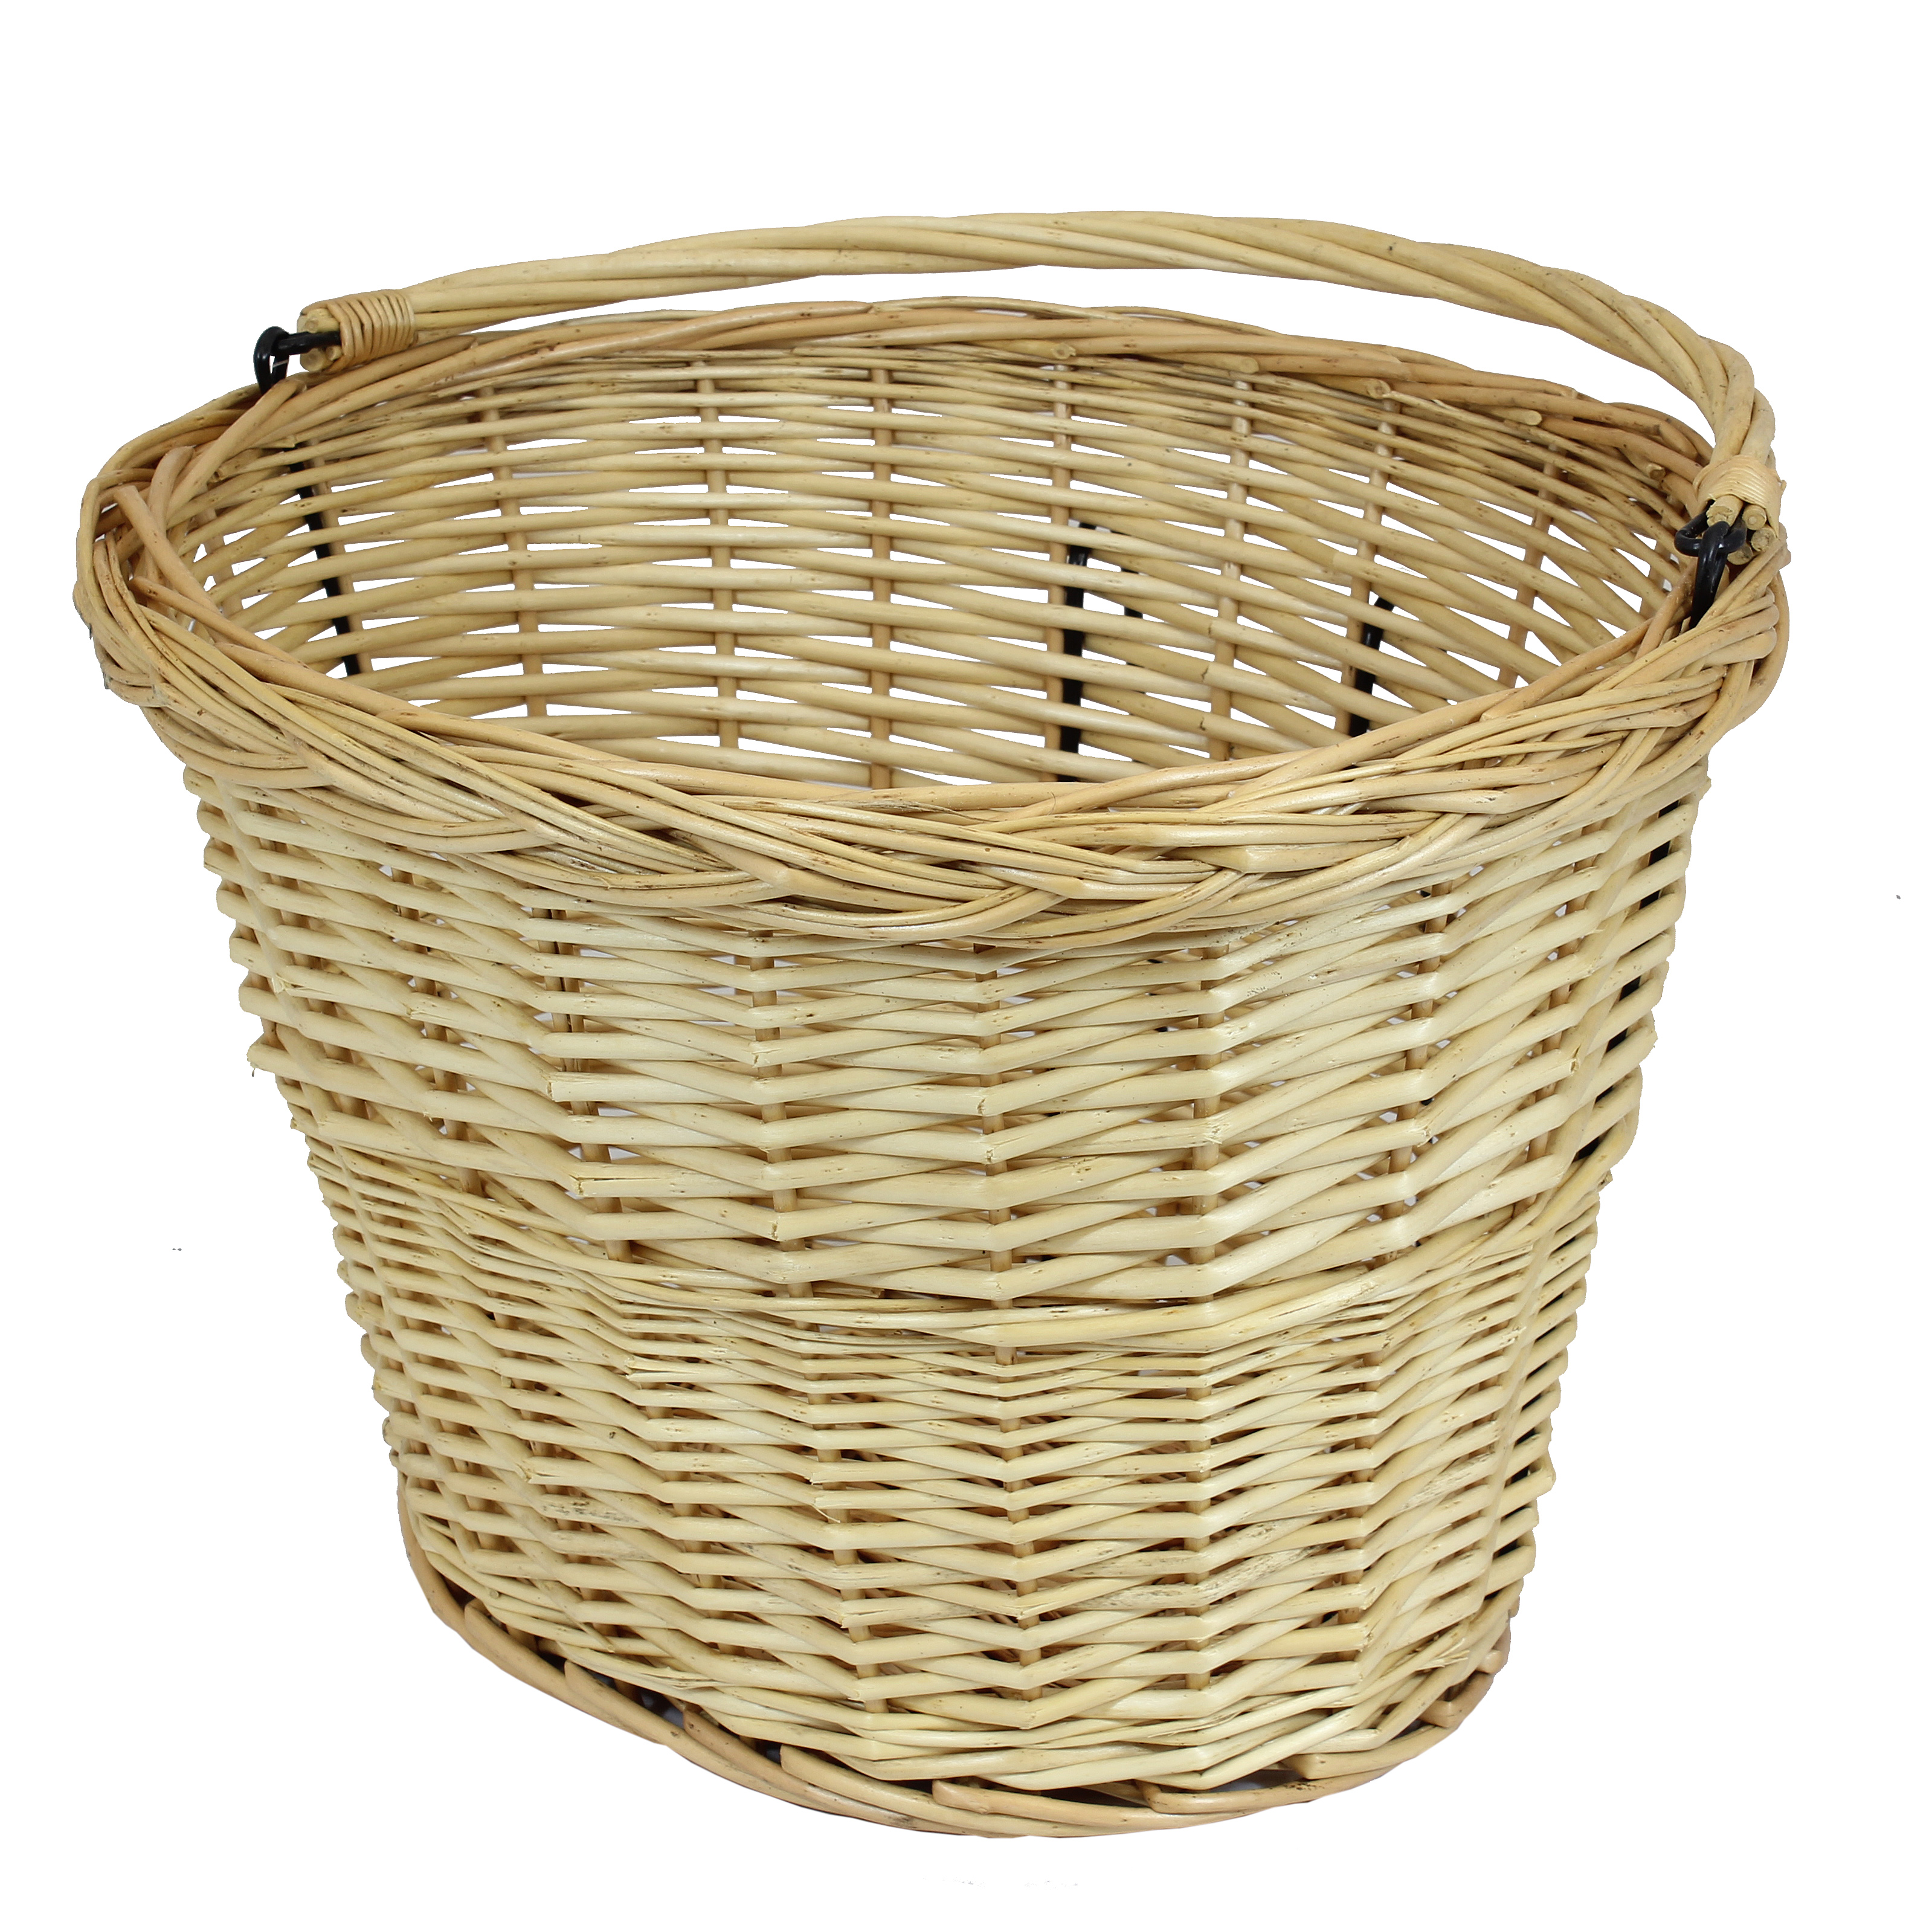 Wicker Bicycle Basket With Handle : Bicycle wicker basket handle cycle bike classic ping